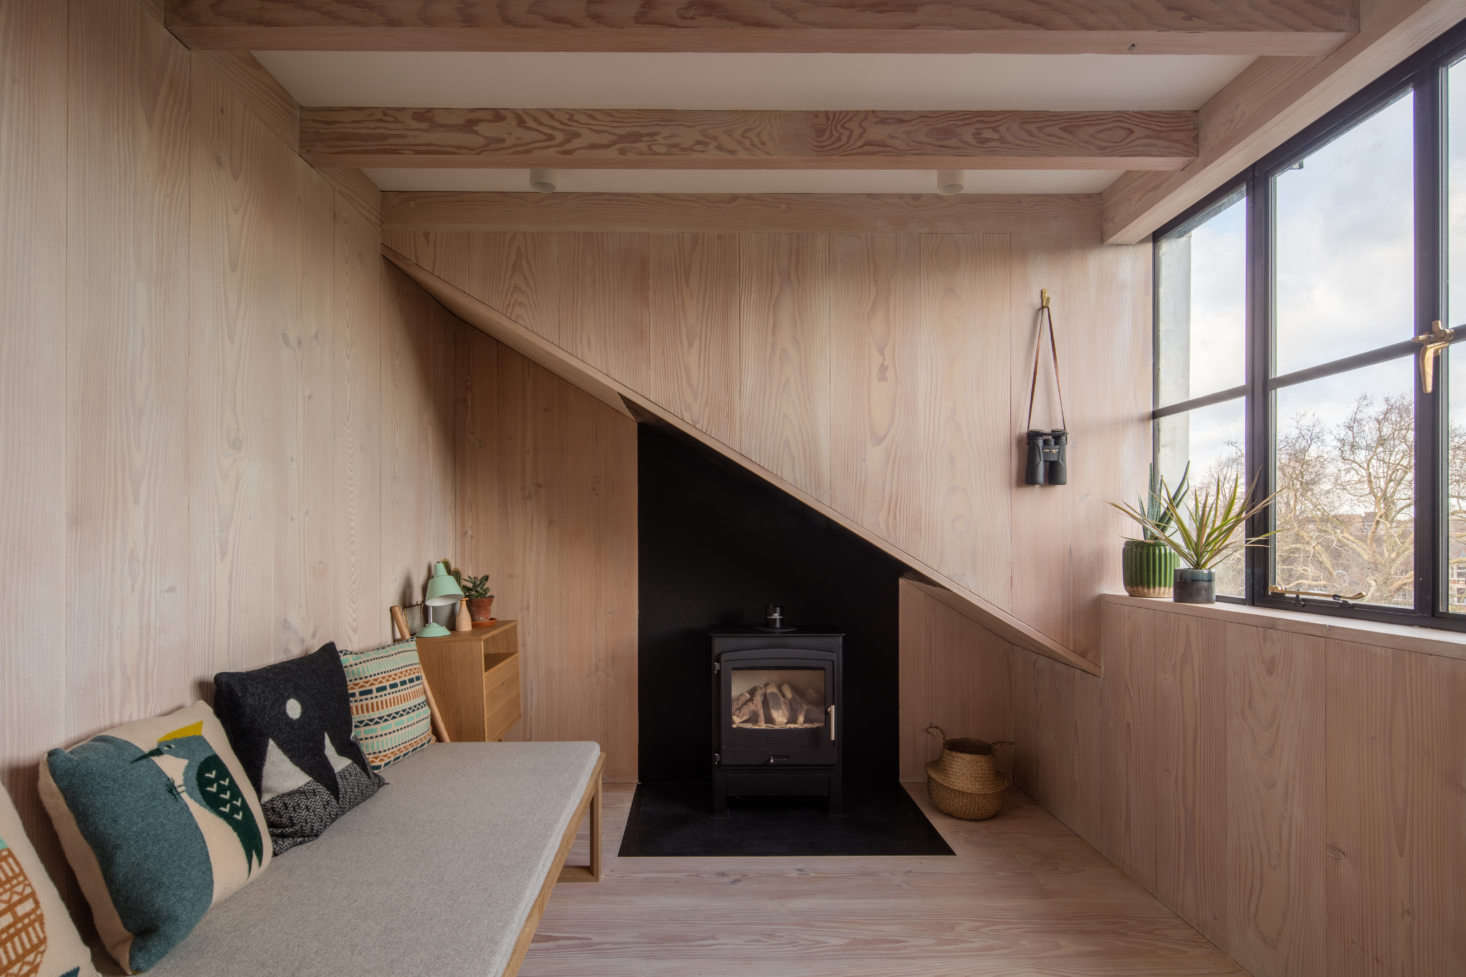 An upstairs bedroom/sitting room with another woodstove (note the black metal cladding that continues under the eaves).